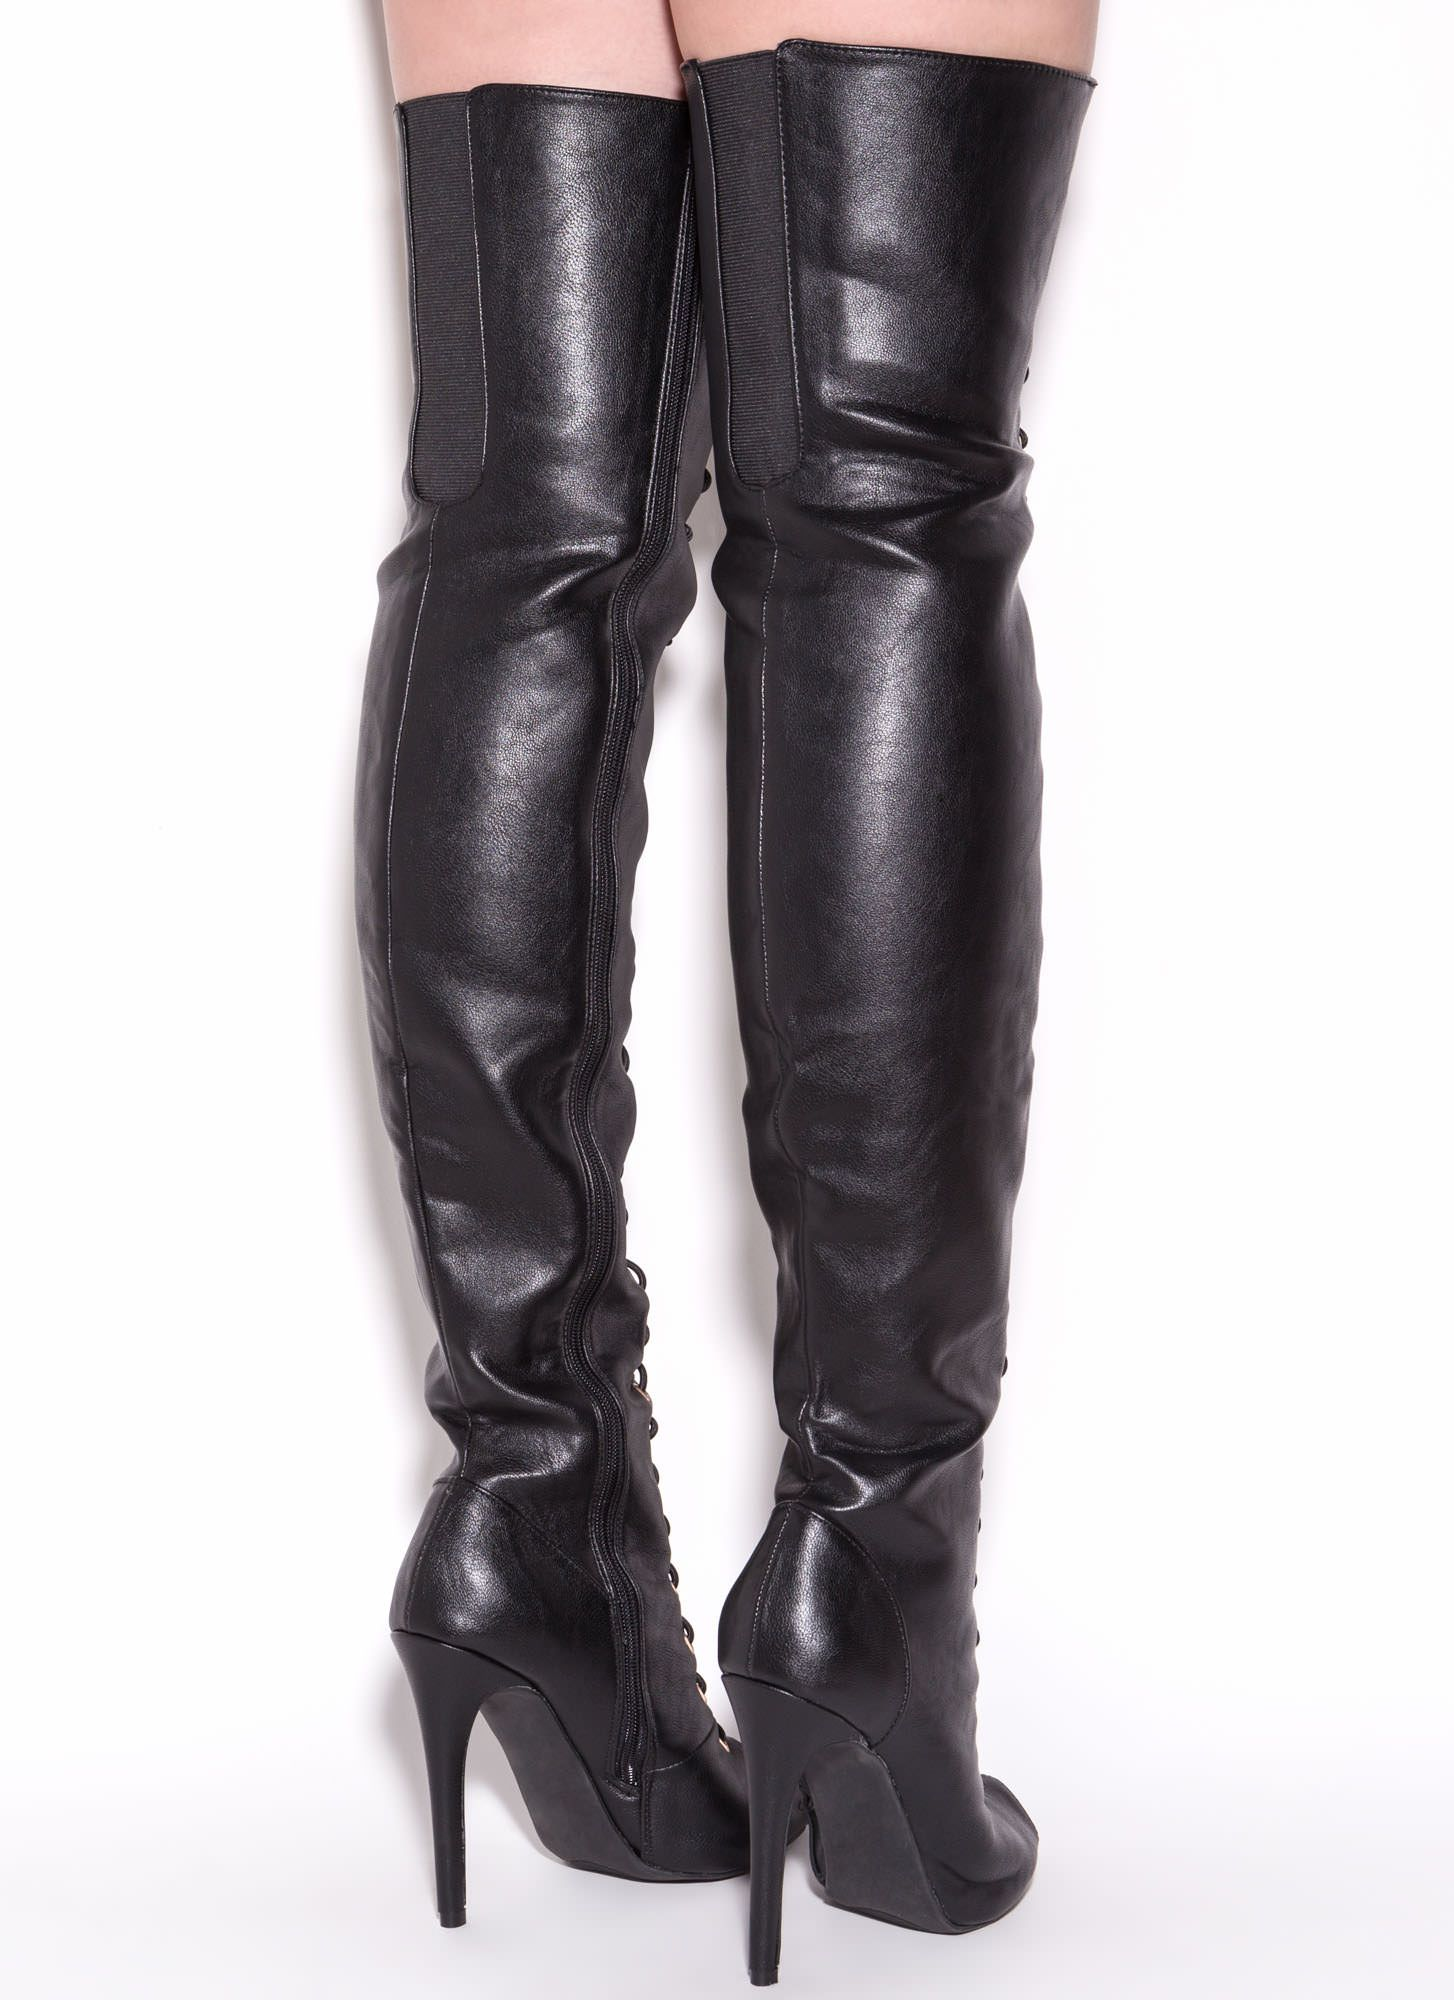 Thigh High Black Leather Boots POmfvywa | 옷감 | Pinterest | Black ...